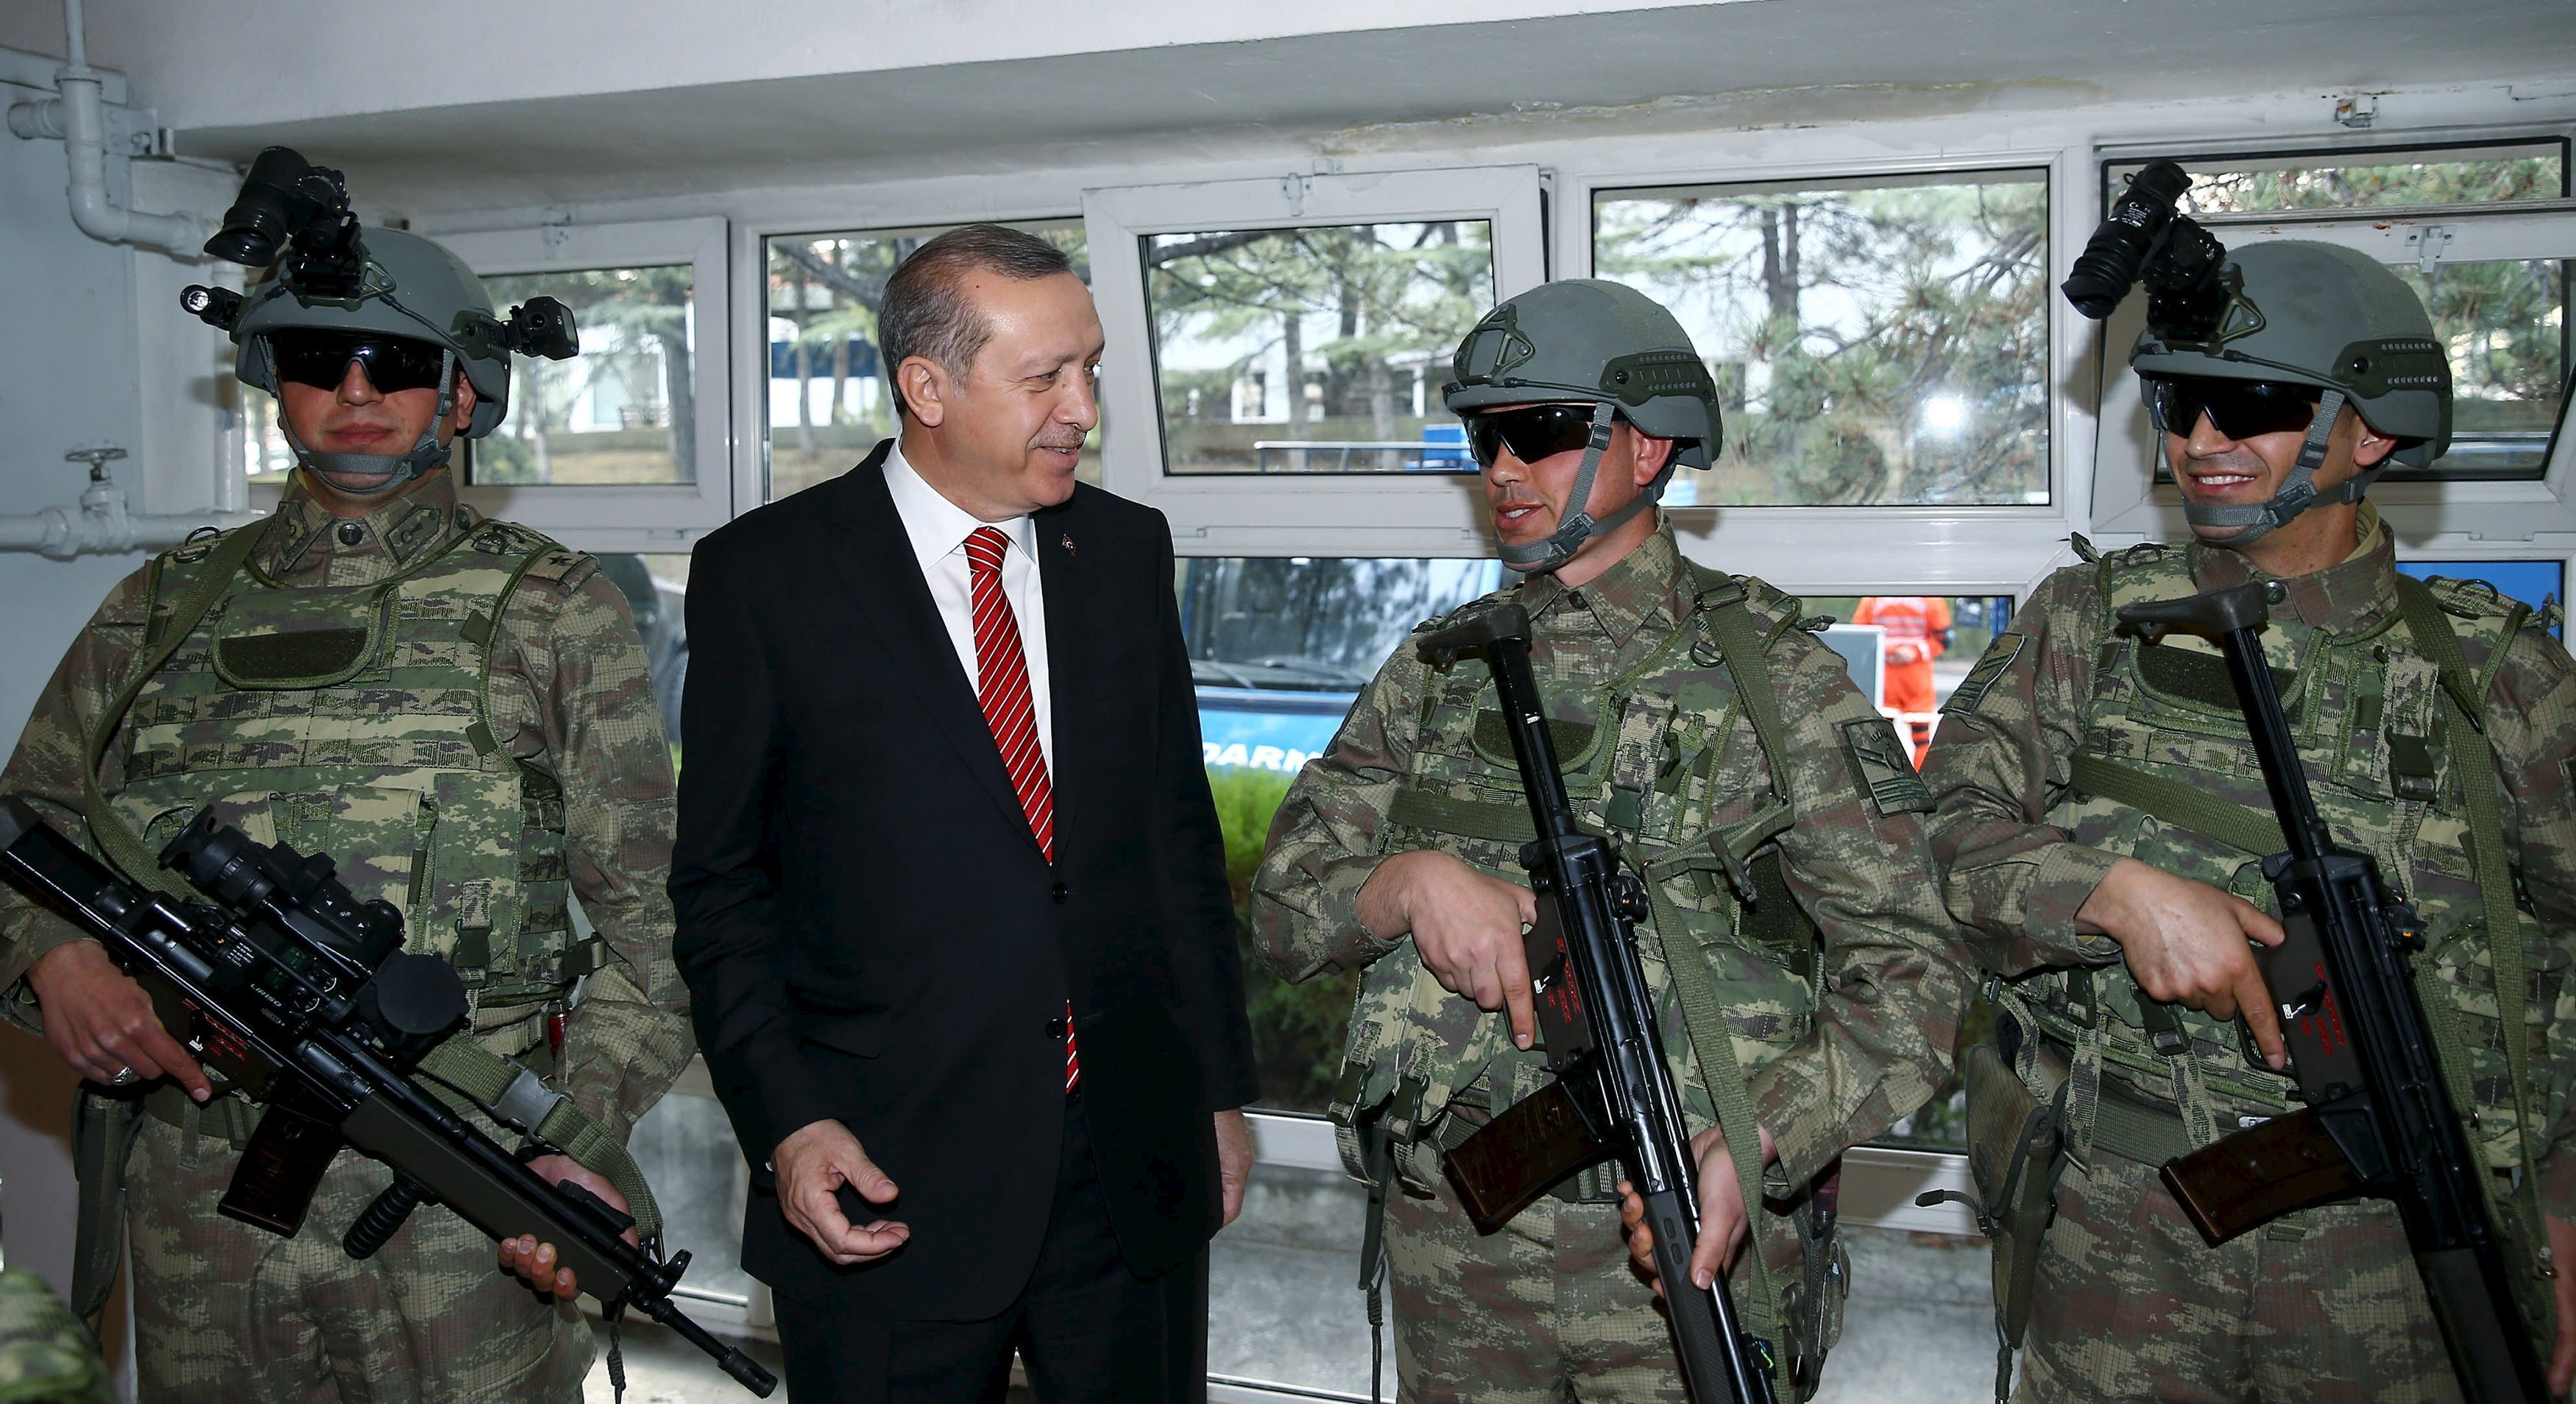 Turkish President Tayyip Erdogan (2nd L) speaks with commandos during his visit at the Gendarmerie Commando Special Forces headquarters in Ankara, Turkey February 16, 2016